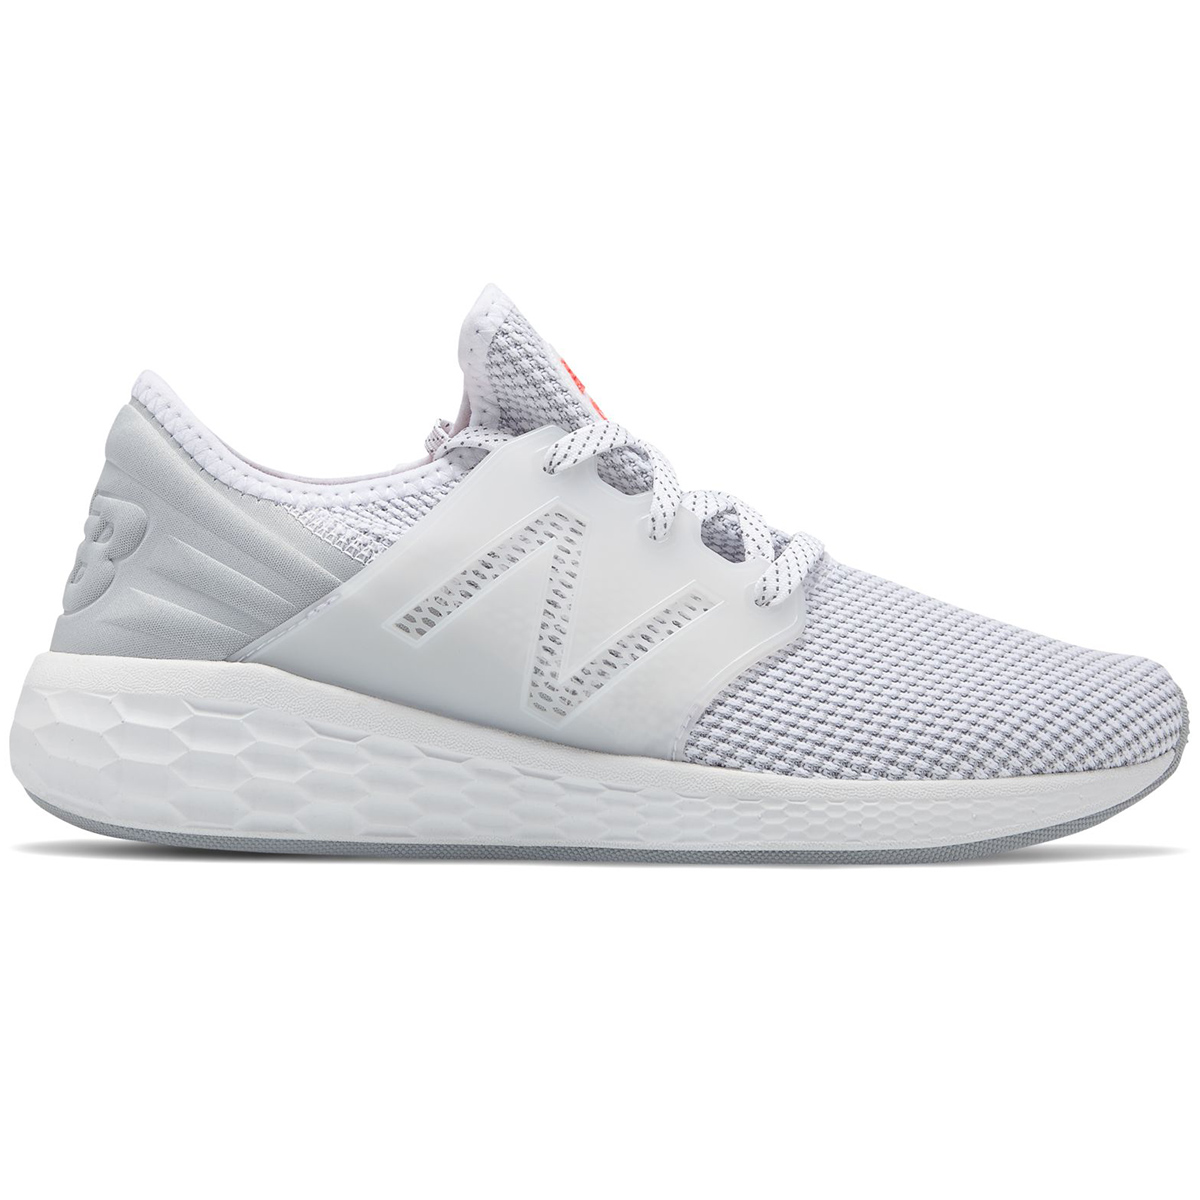 New Balance Women's Fresh Foam Cruz V2 Sport Running Shoes - White, 8